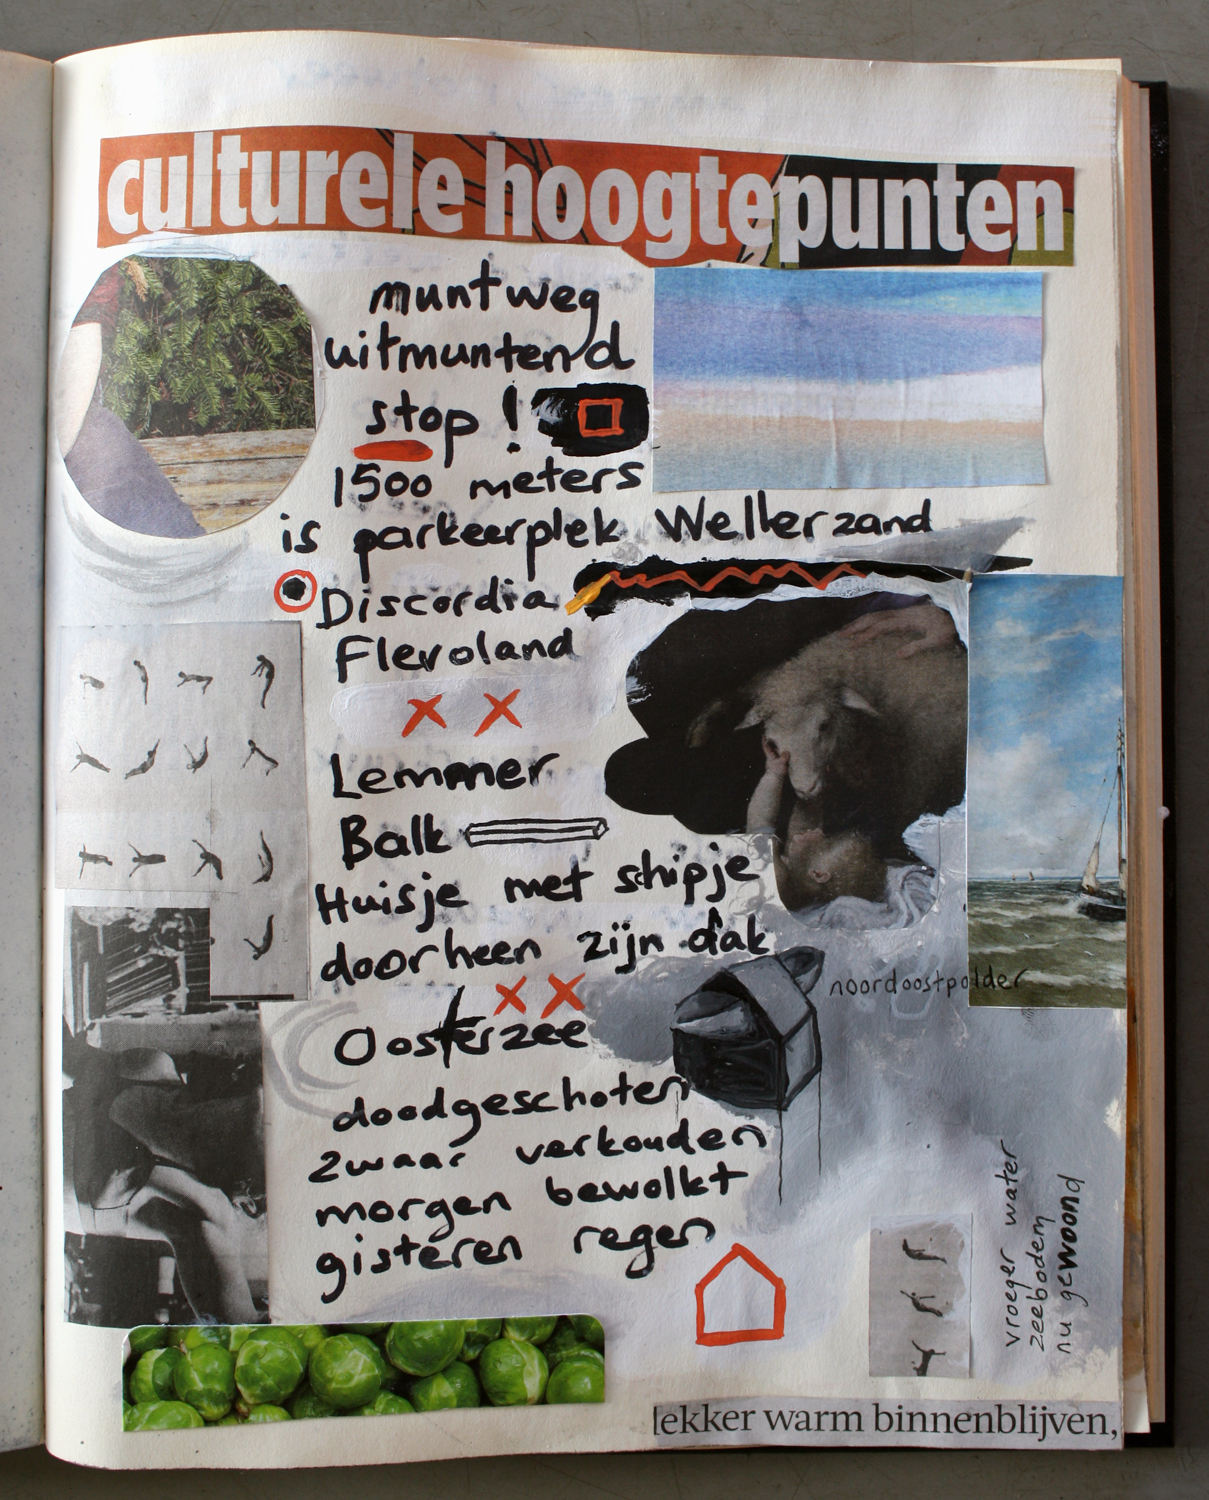 Culturele hoogtepunten (pg 1) Snelwegpoezie Cultural Highlights from mint to sweat (p. 1) Highway poetry